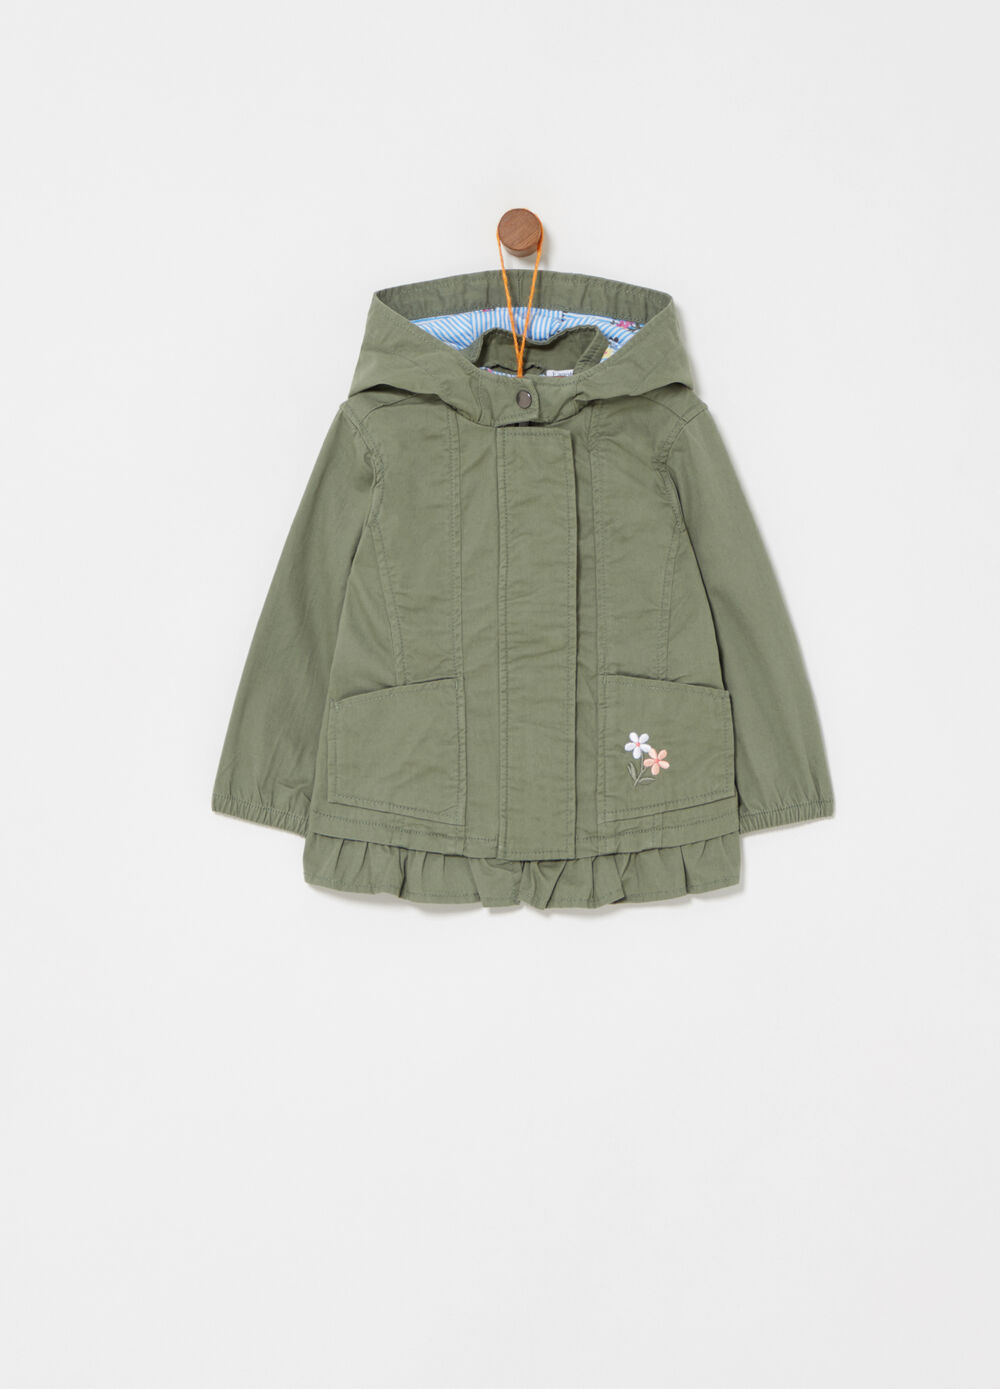 Twill parka with pockets and floral embroidery